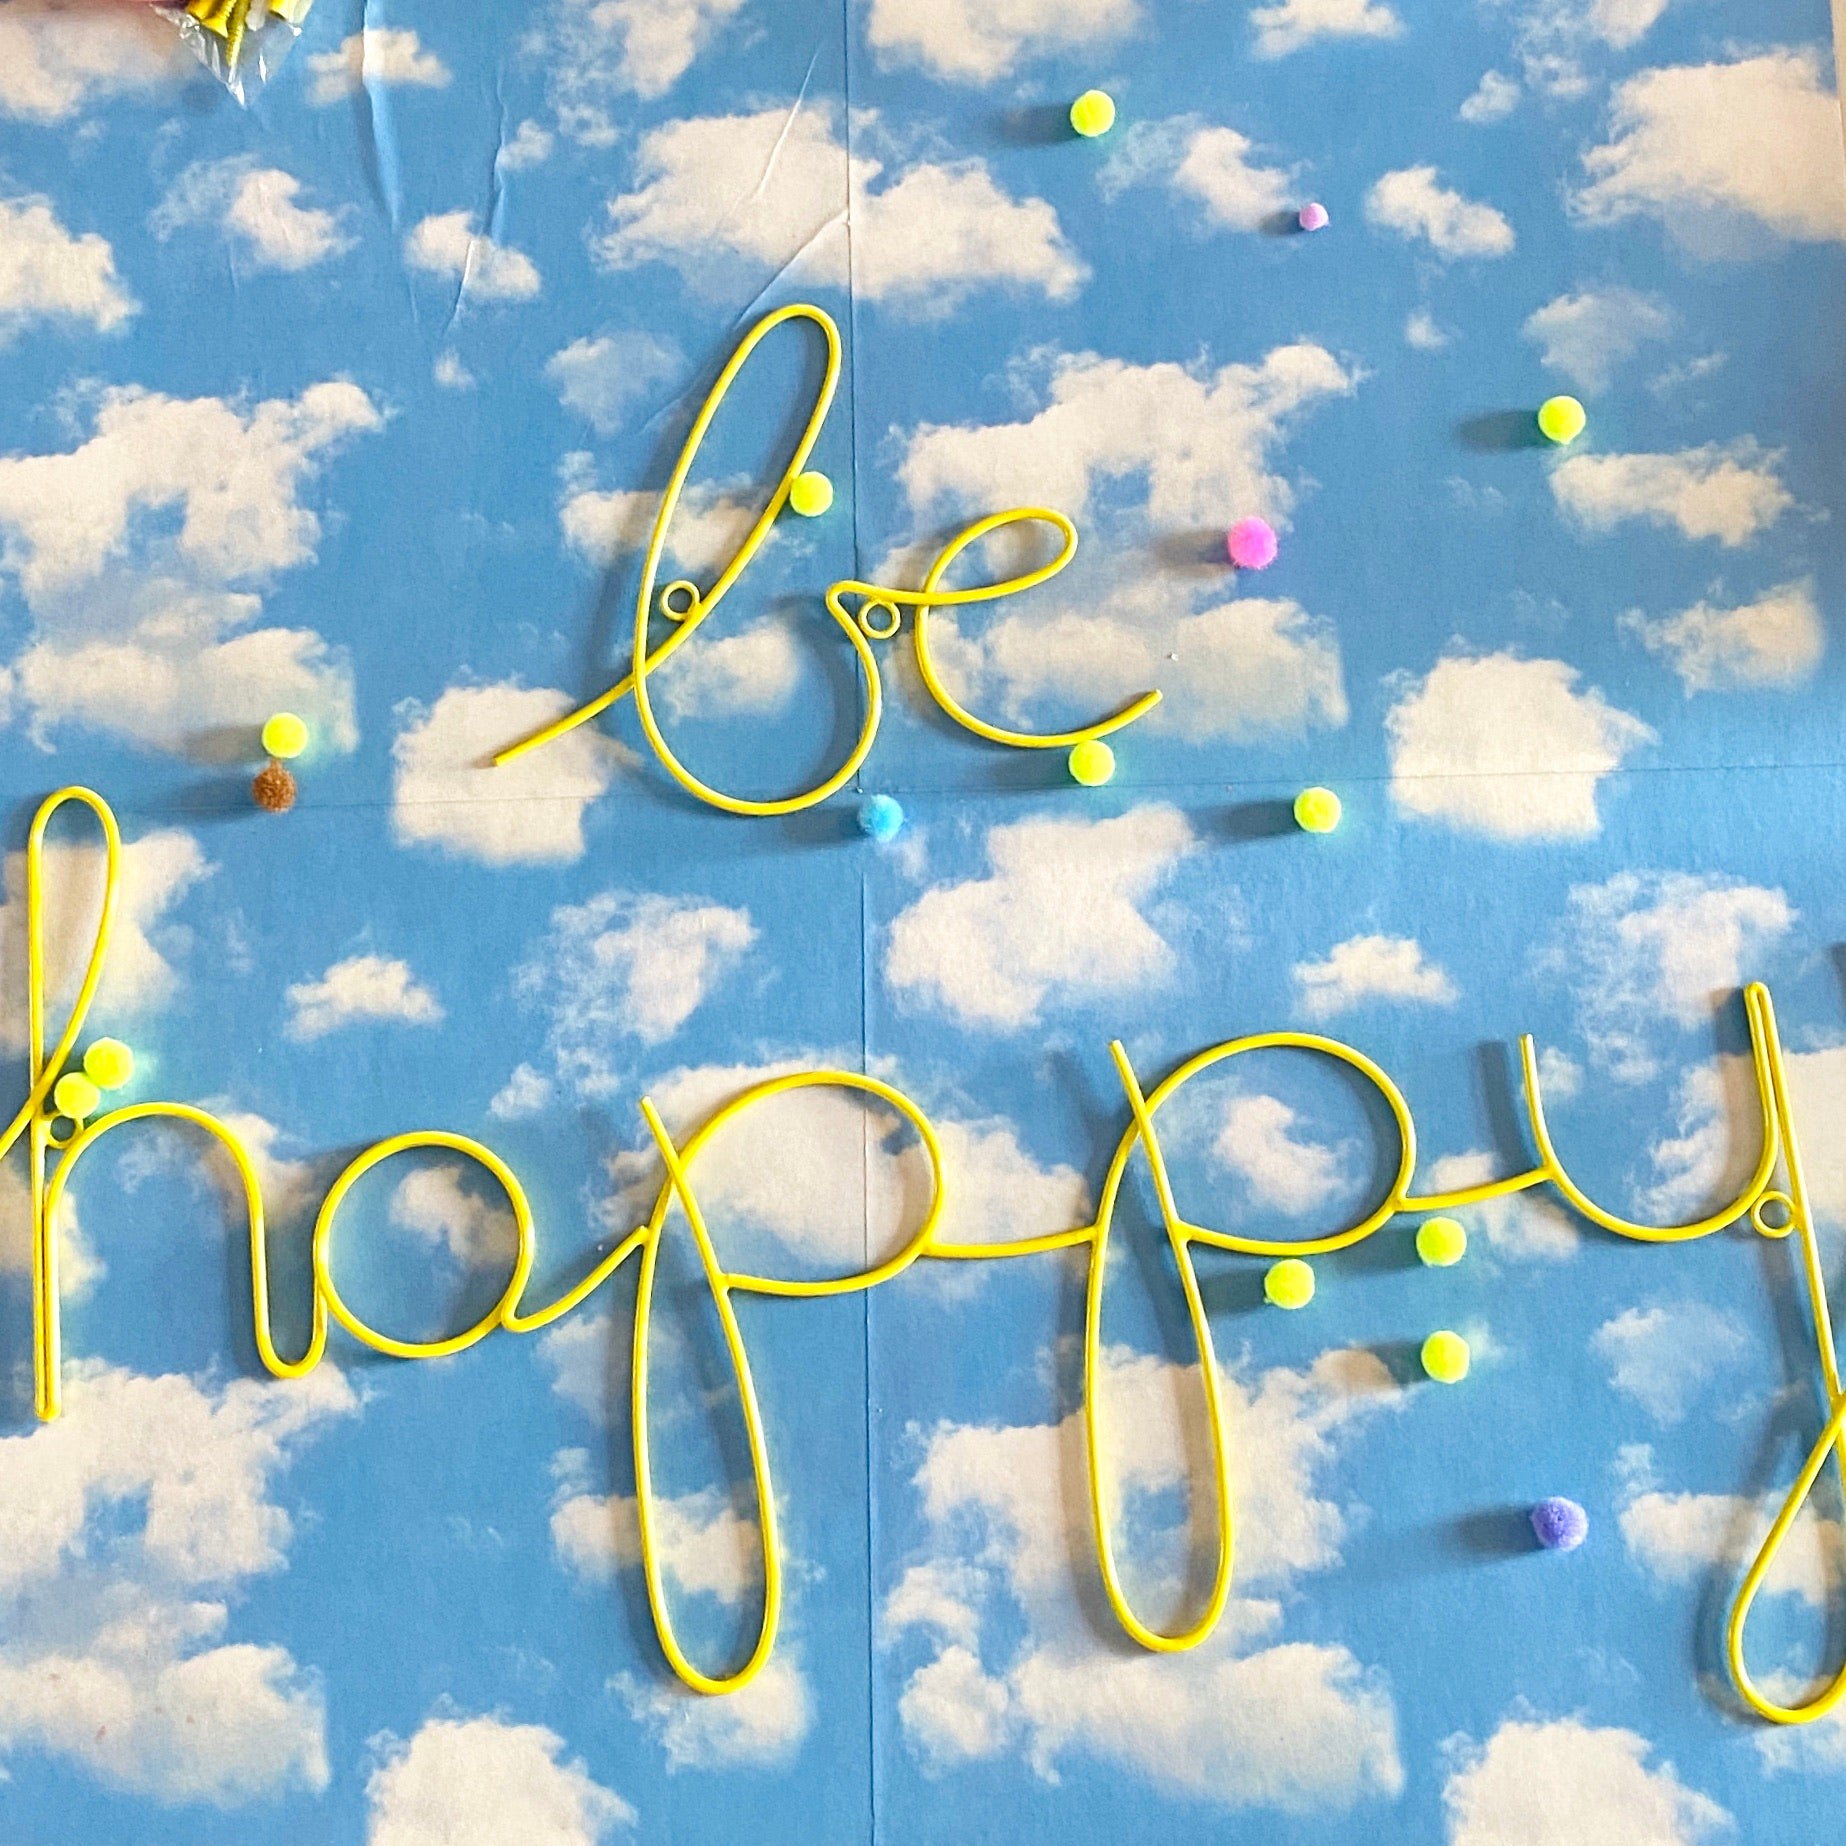 'Be happy' wall word